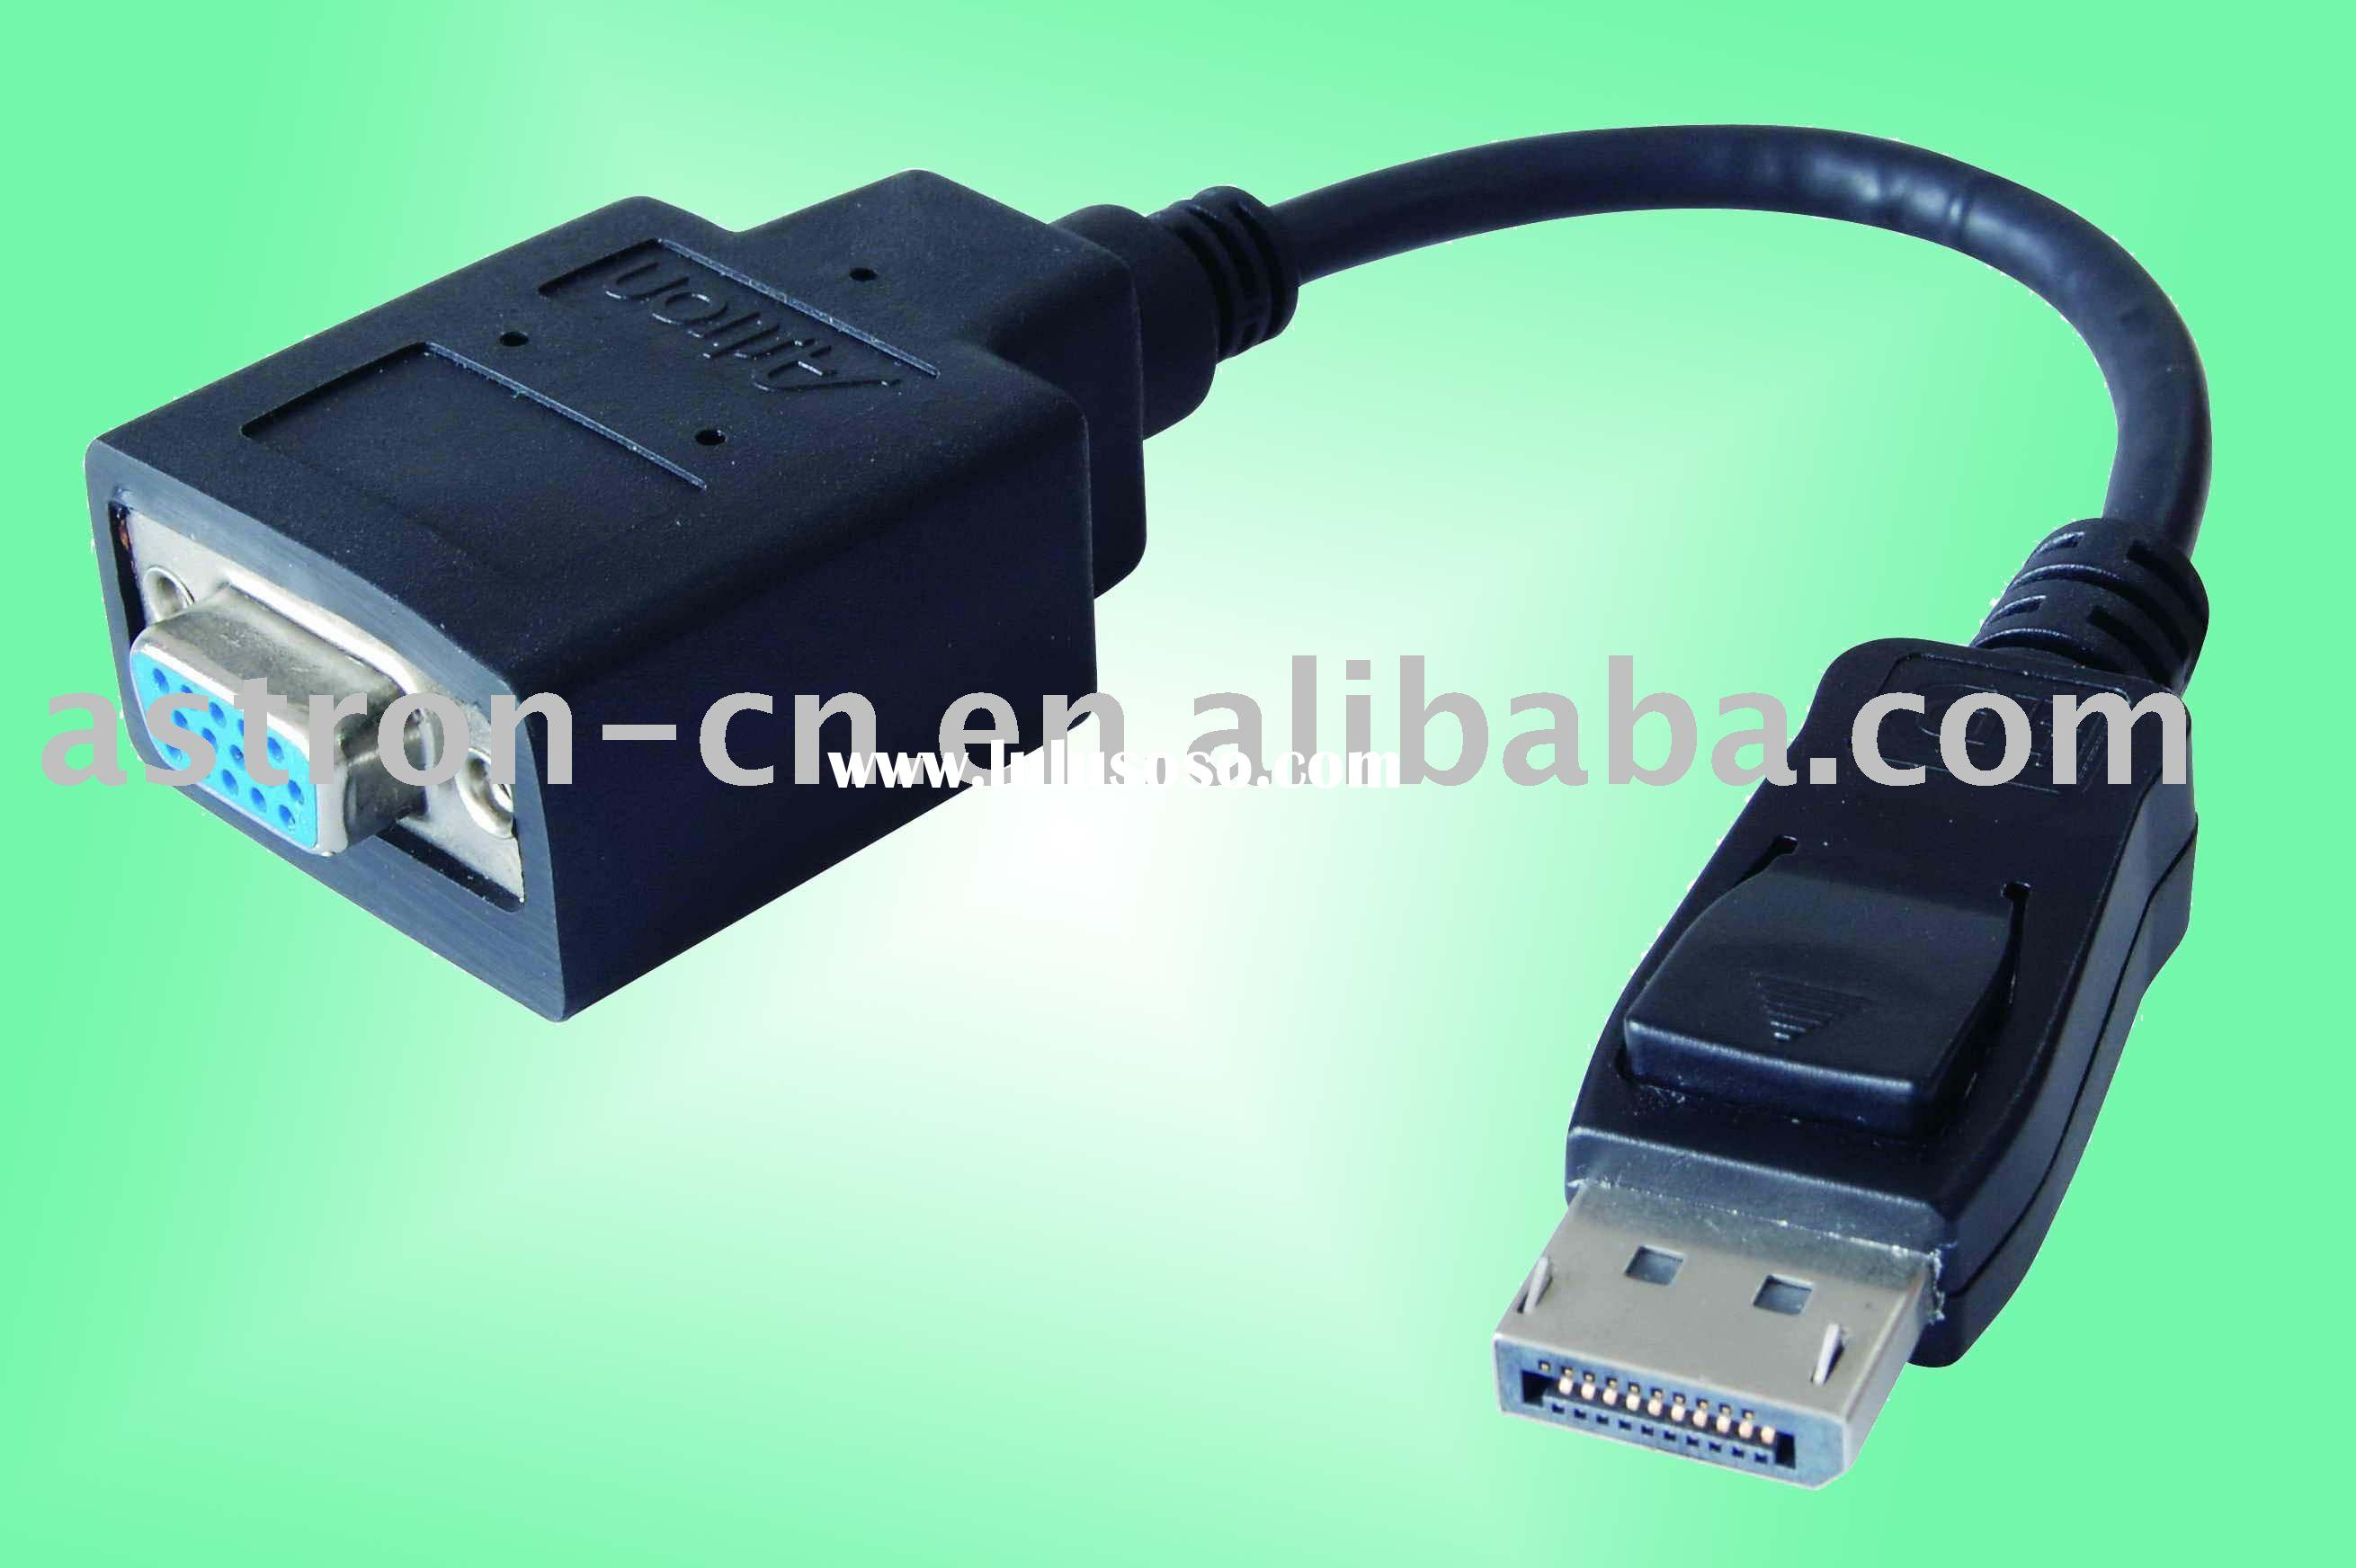 computer cable covers, computer cable covers Manufacturers in ...